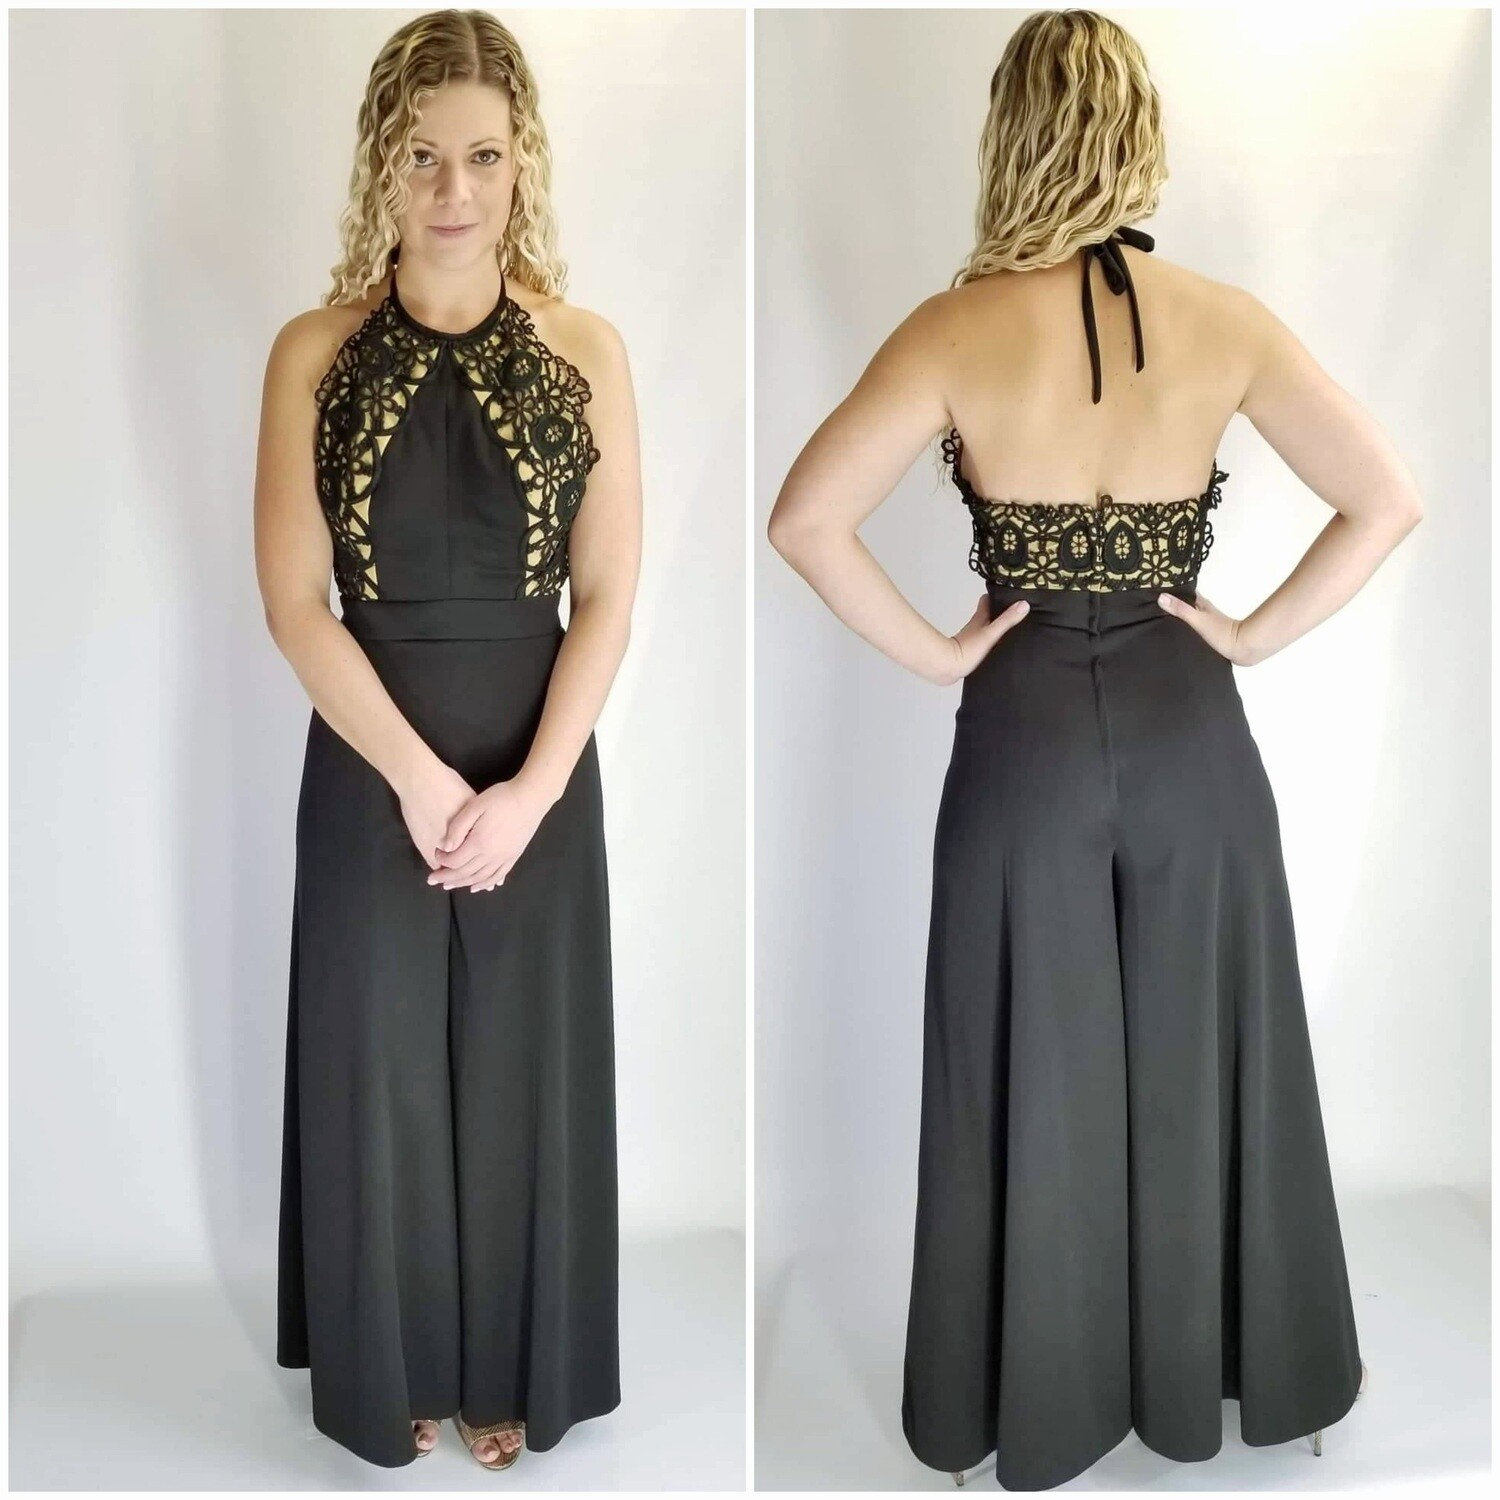 Early - Mid 1970s Dramatic Nude Illusion JumpSuit